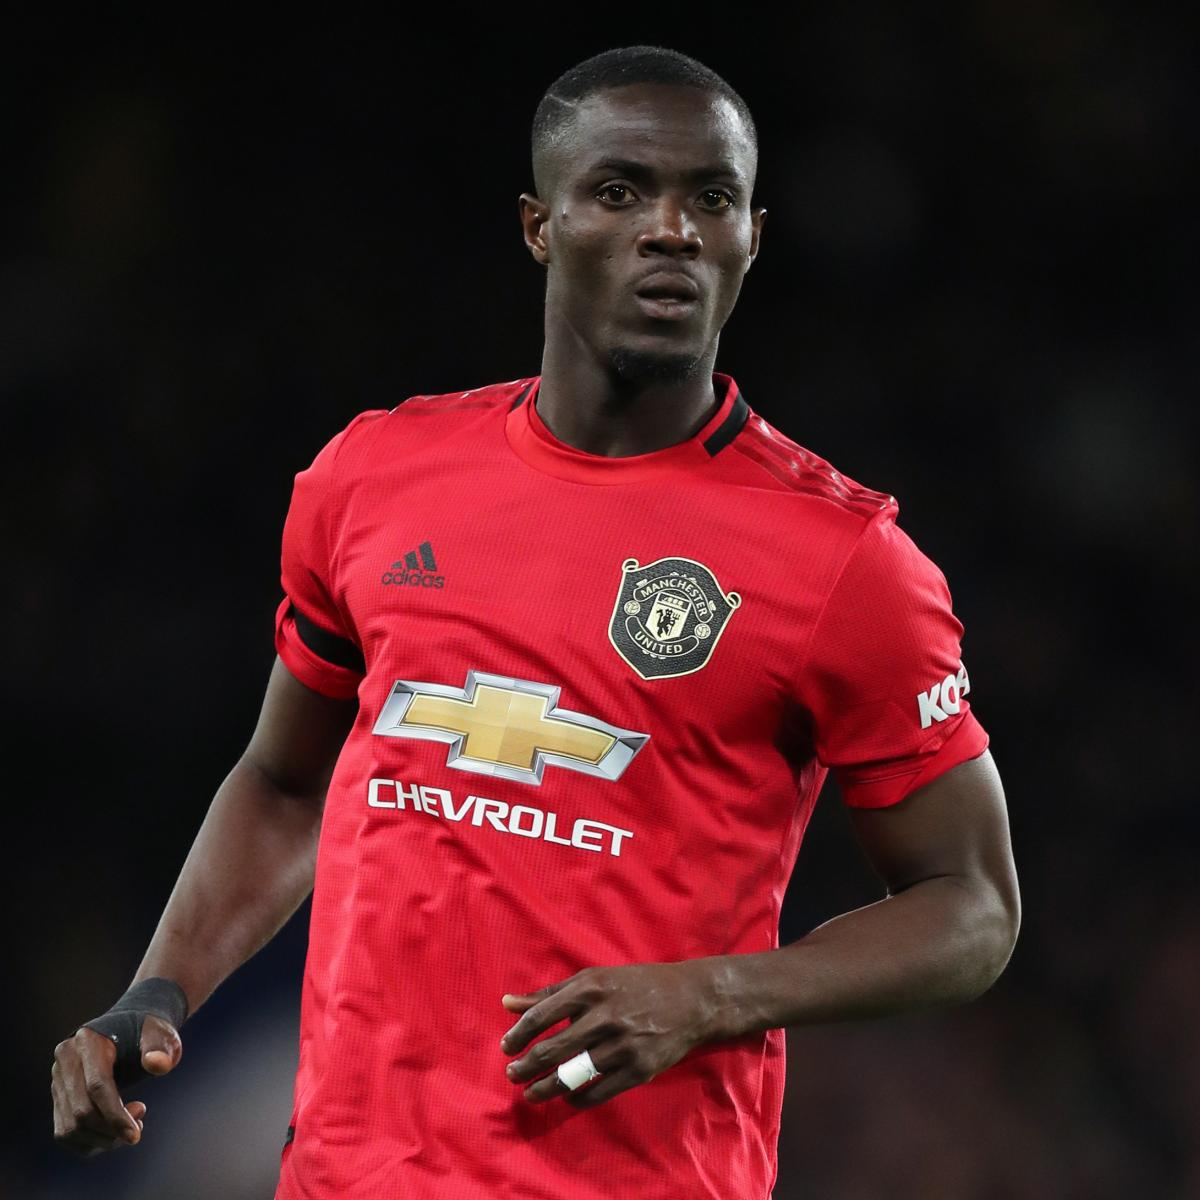 Manchester United's Eric Bailly Was 'Nervous' in Return from Injury vs. Chelsea